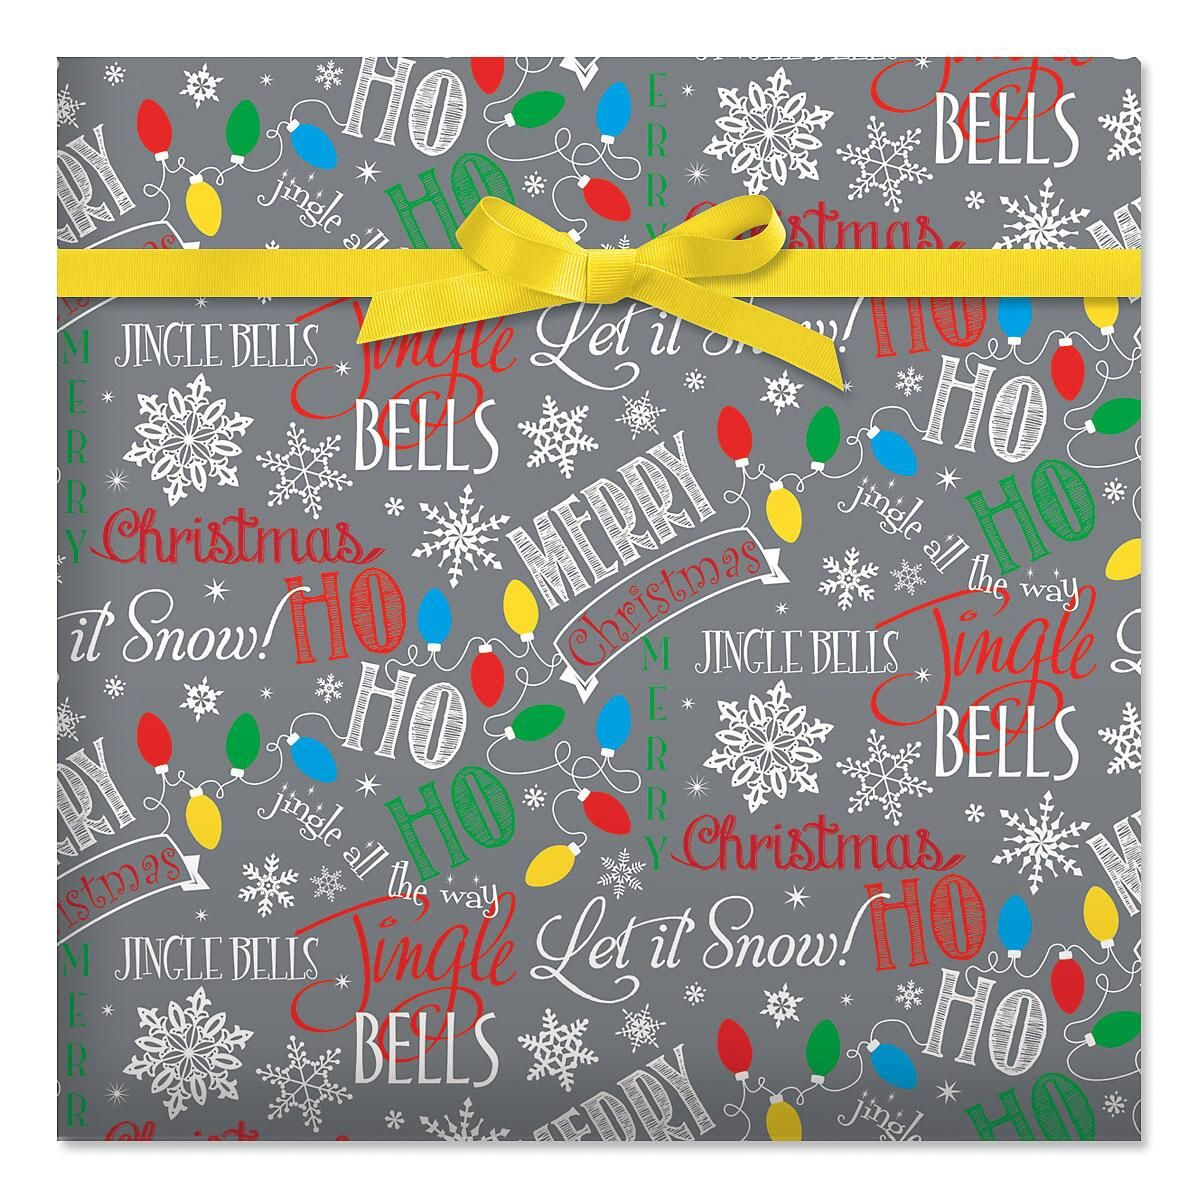 Let It Snow Silver Holiday Jumbo Rolled Gift Wrap